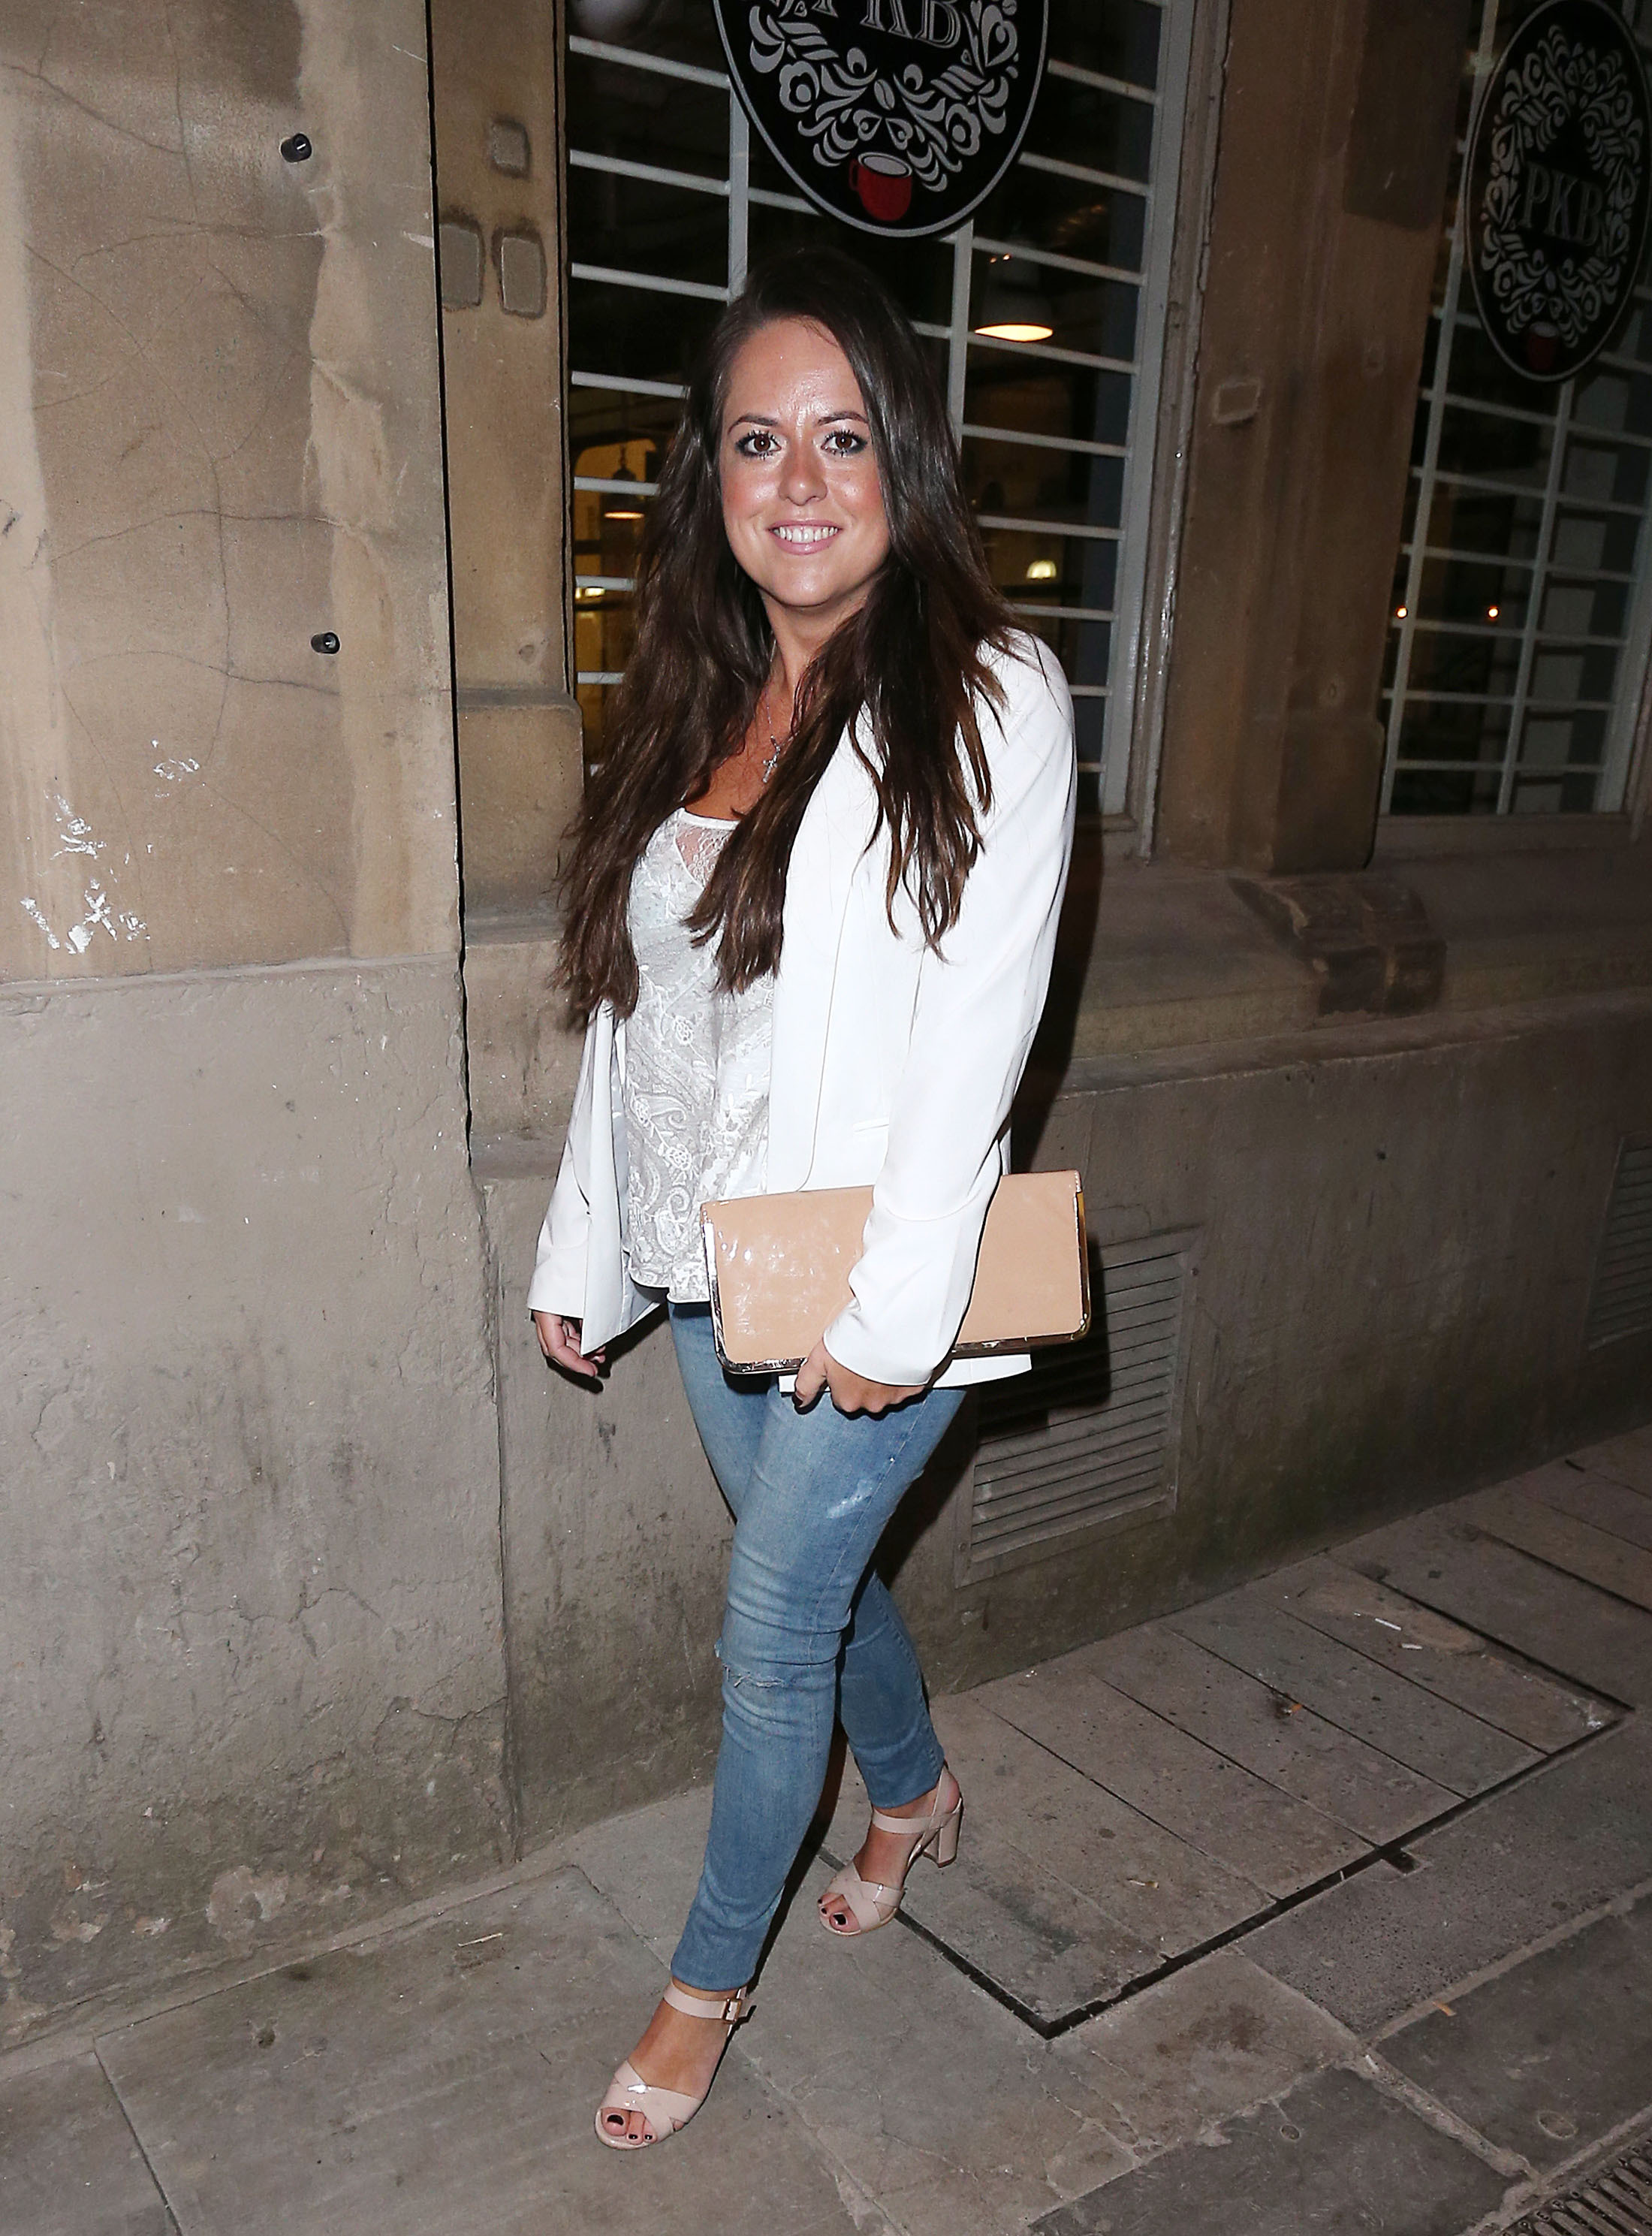 Feet Karen Danczuk nude (96 photos), Tits, Cleavage, Instagram, bra 2018